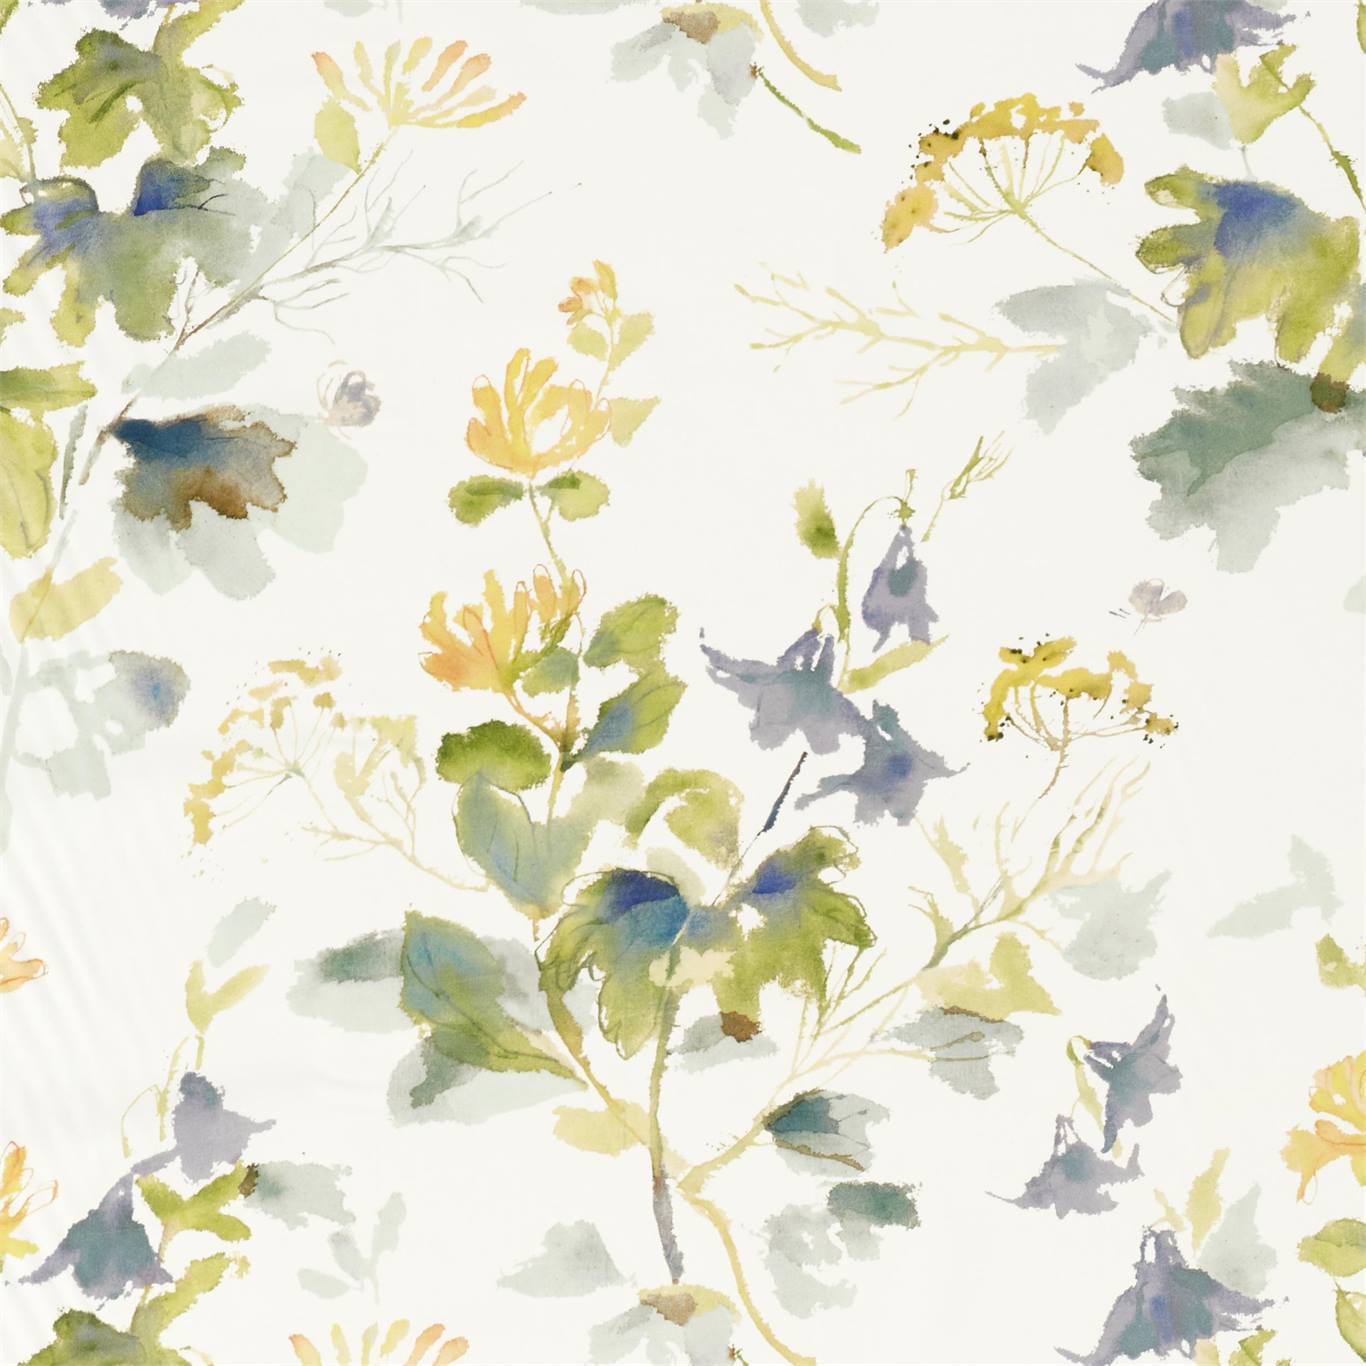 DNTF226739 Collection - National Trust Fabric